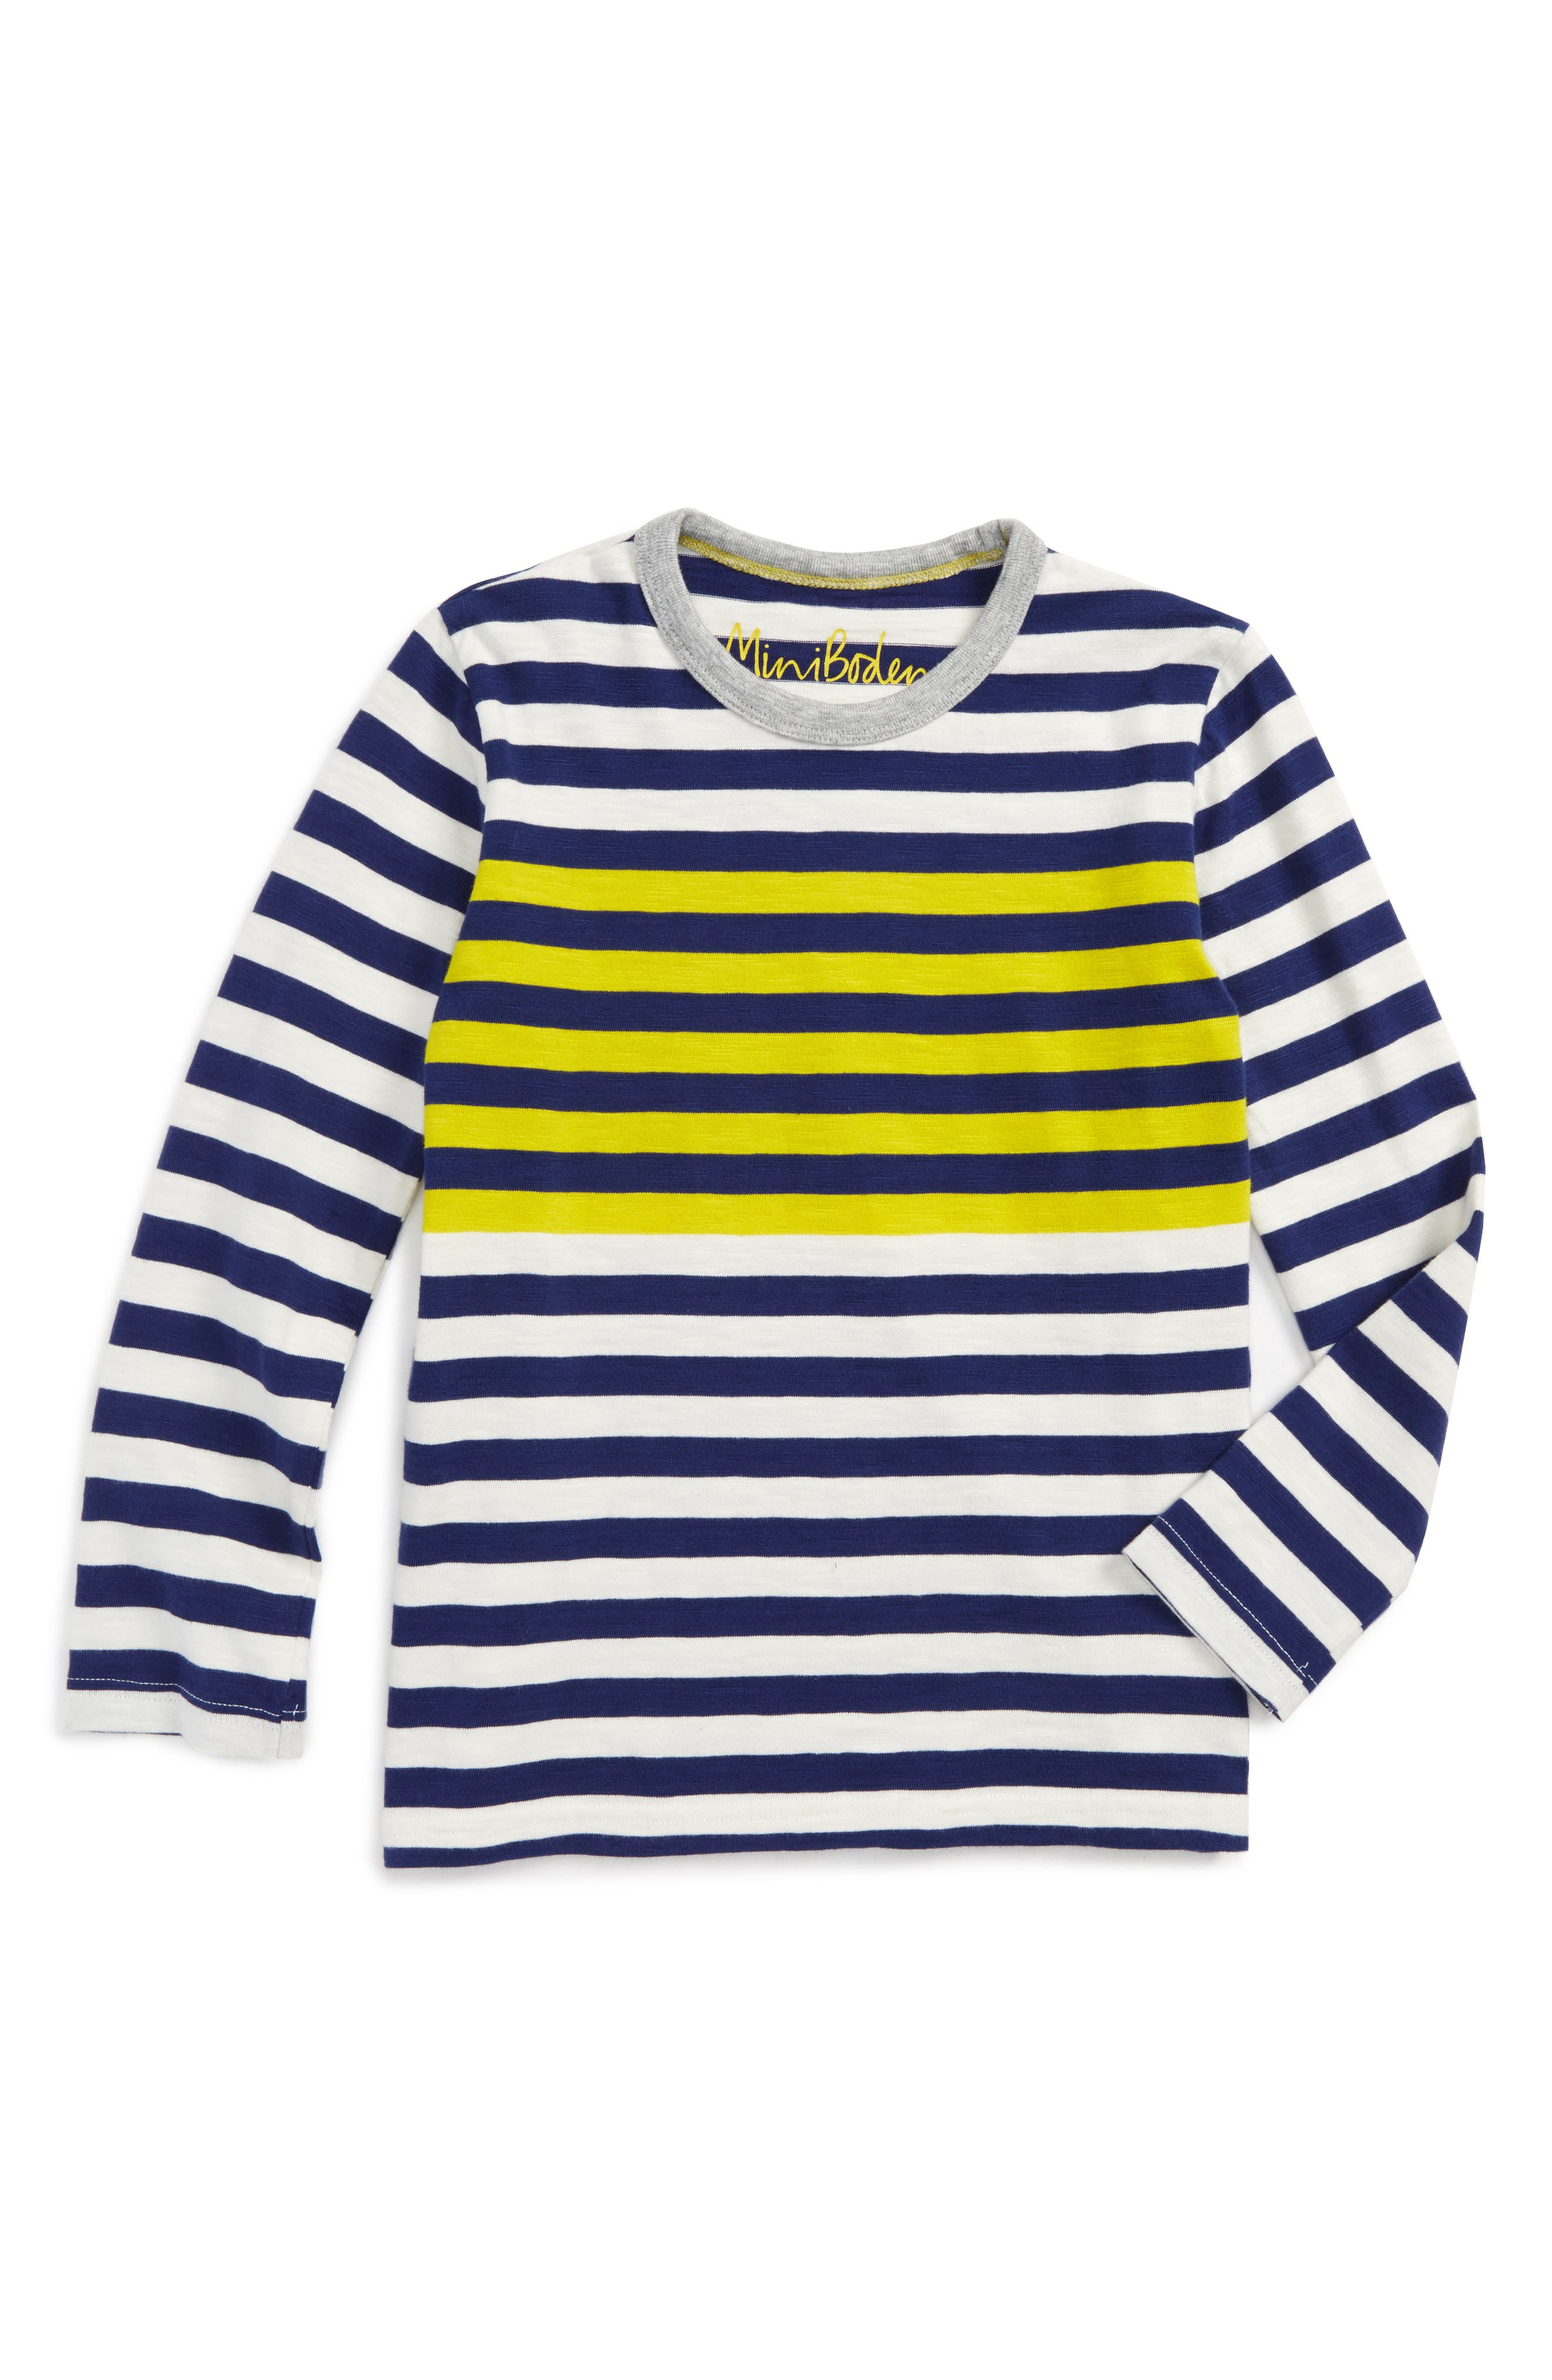 Mini Boden Stripe Long Sleeve T-Shirt (Toddler Boys, Little Boys & Big Boys)